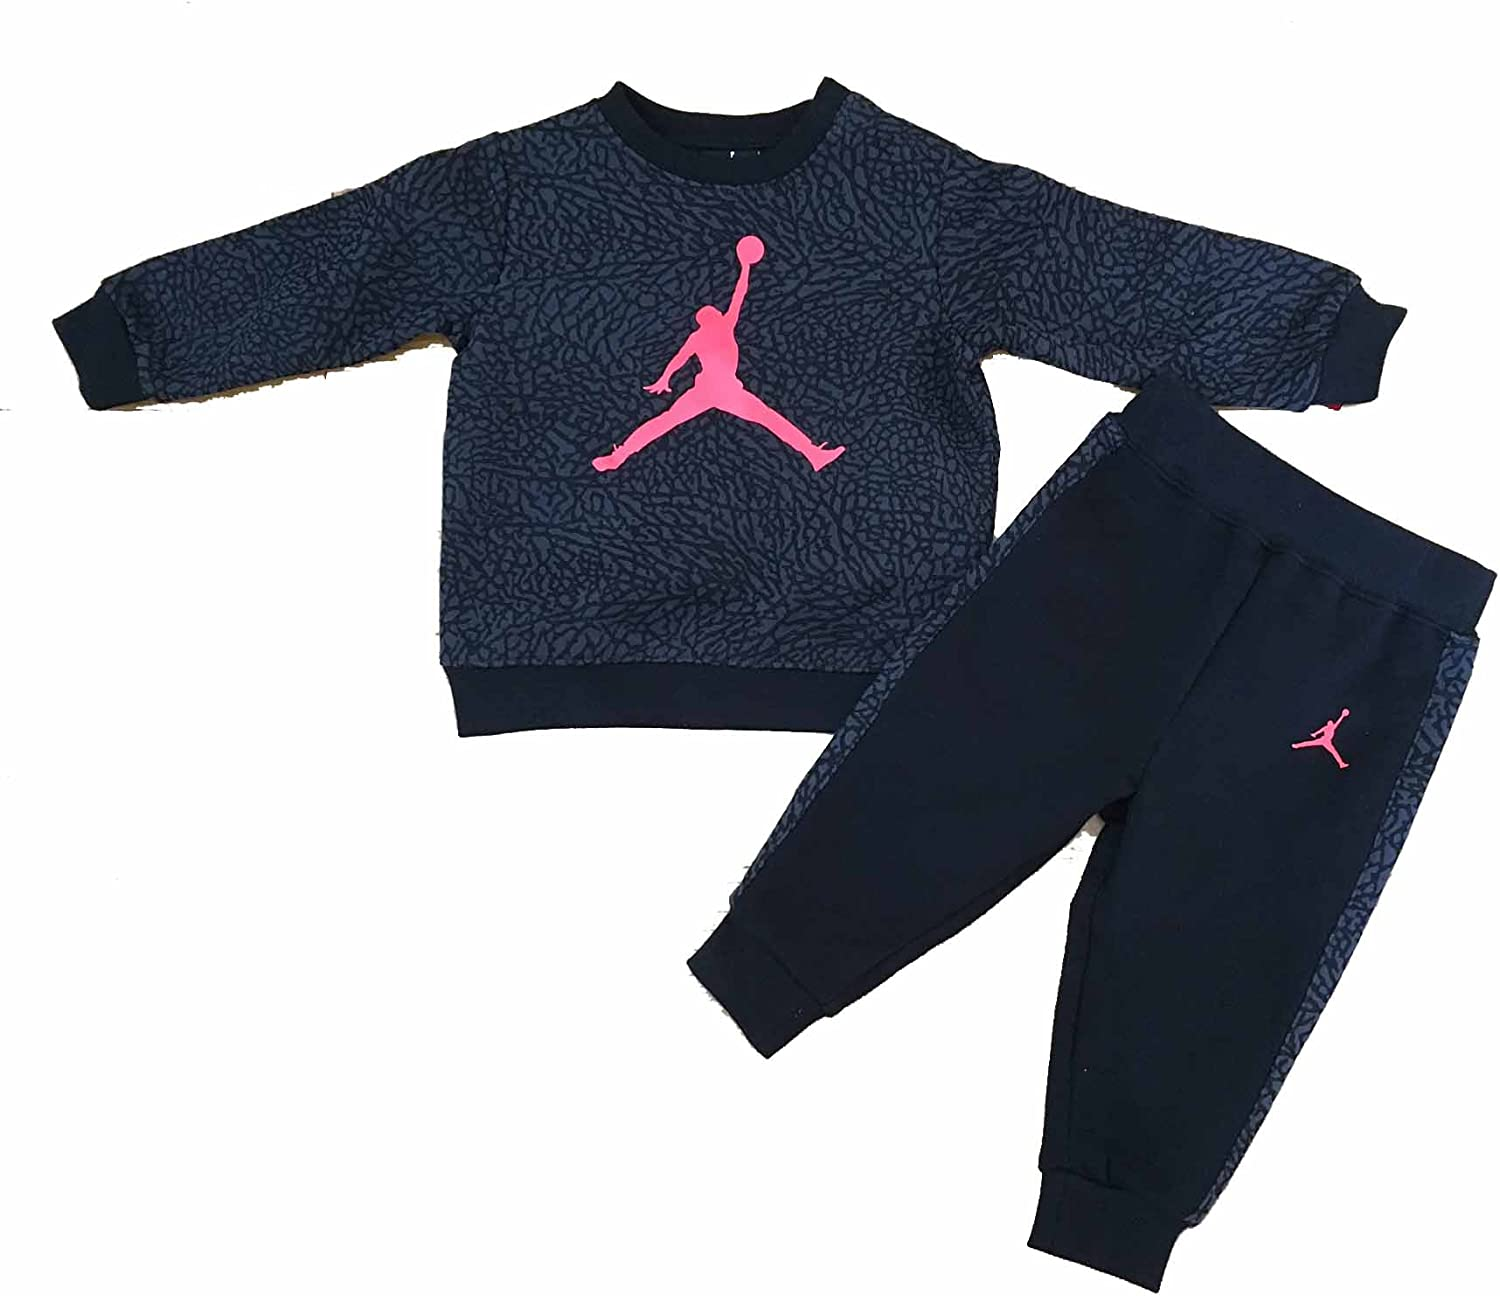 Boys Toddler Bargain sale Nike Air Jordan Two Pullover and Today's only Piece - Pants Set